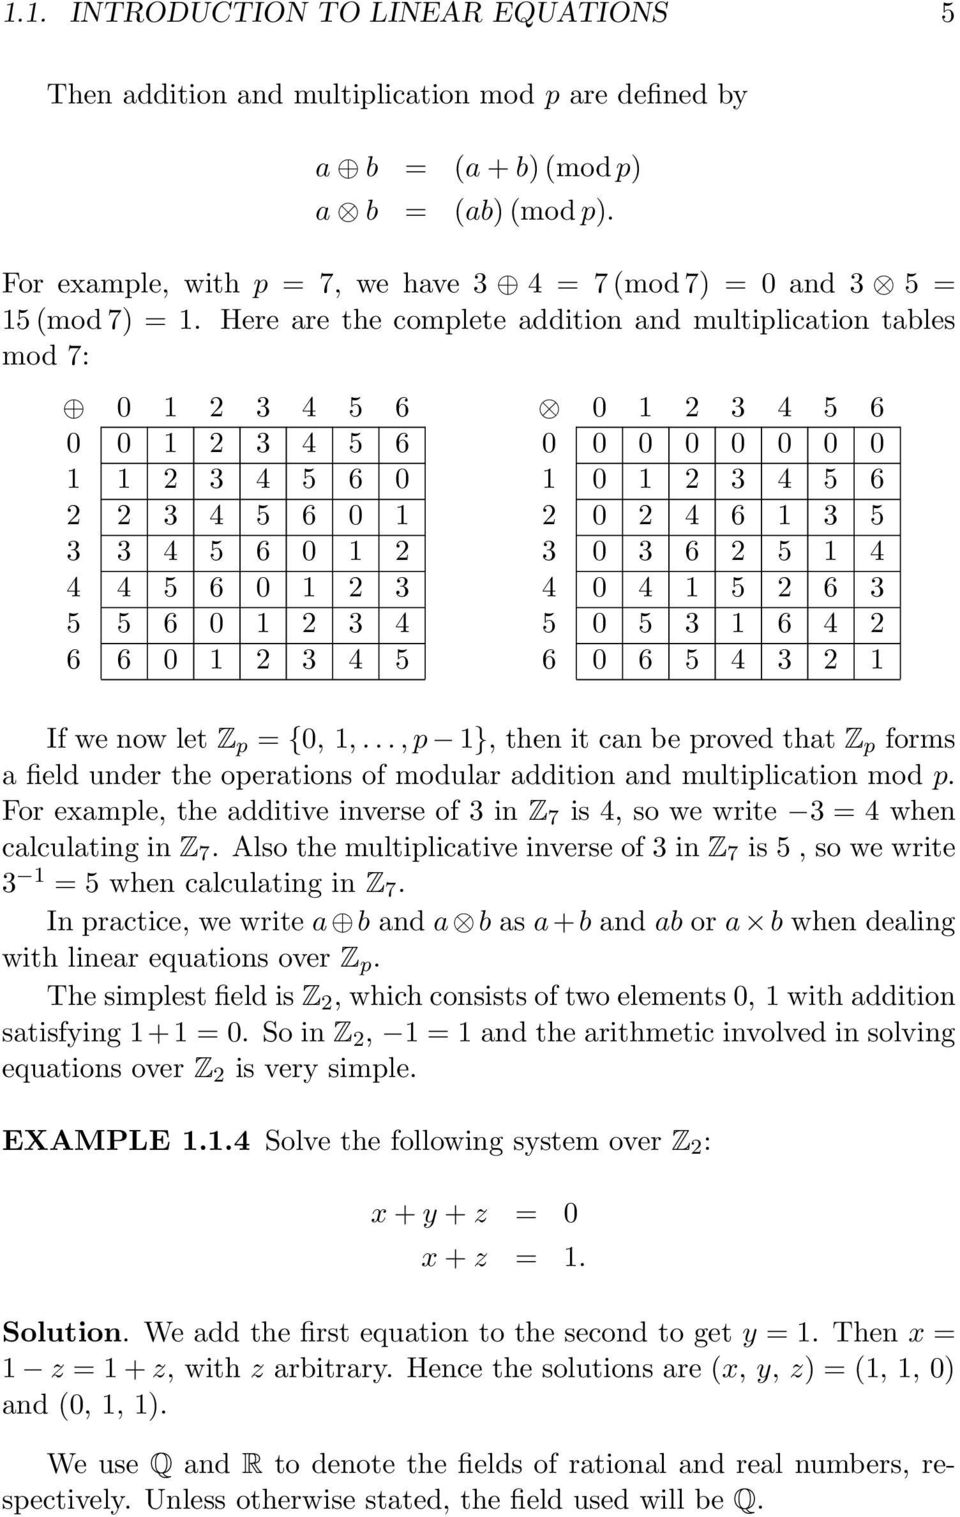 Here are the complete addition and multiplication tables mod 7: 0 1 3 4 5 6 0 0 1 3 4 5 6 1 1 3 4 5 6 0 3 4 5 6 0 1 3 3 4 5 6 0 1 4 4 5 6 0 1 3 5 5 6 0 1 3 4 6 6 0 1 3 4 5 0 1 3 4 5 6 0 0 0 0 0 0 0 0